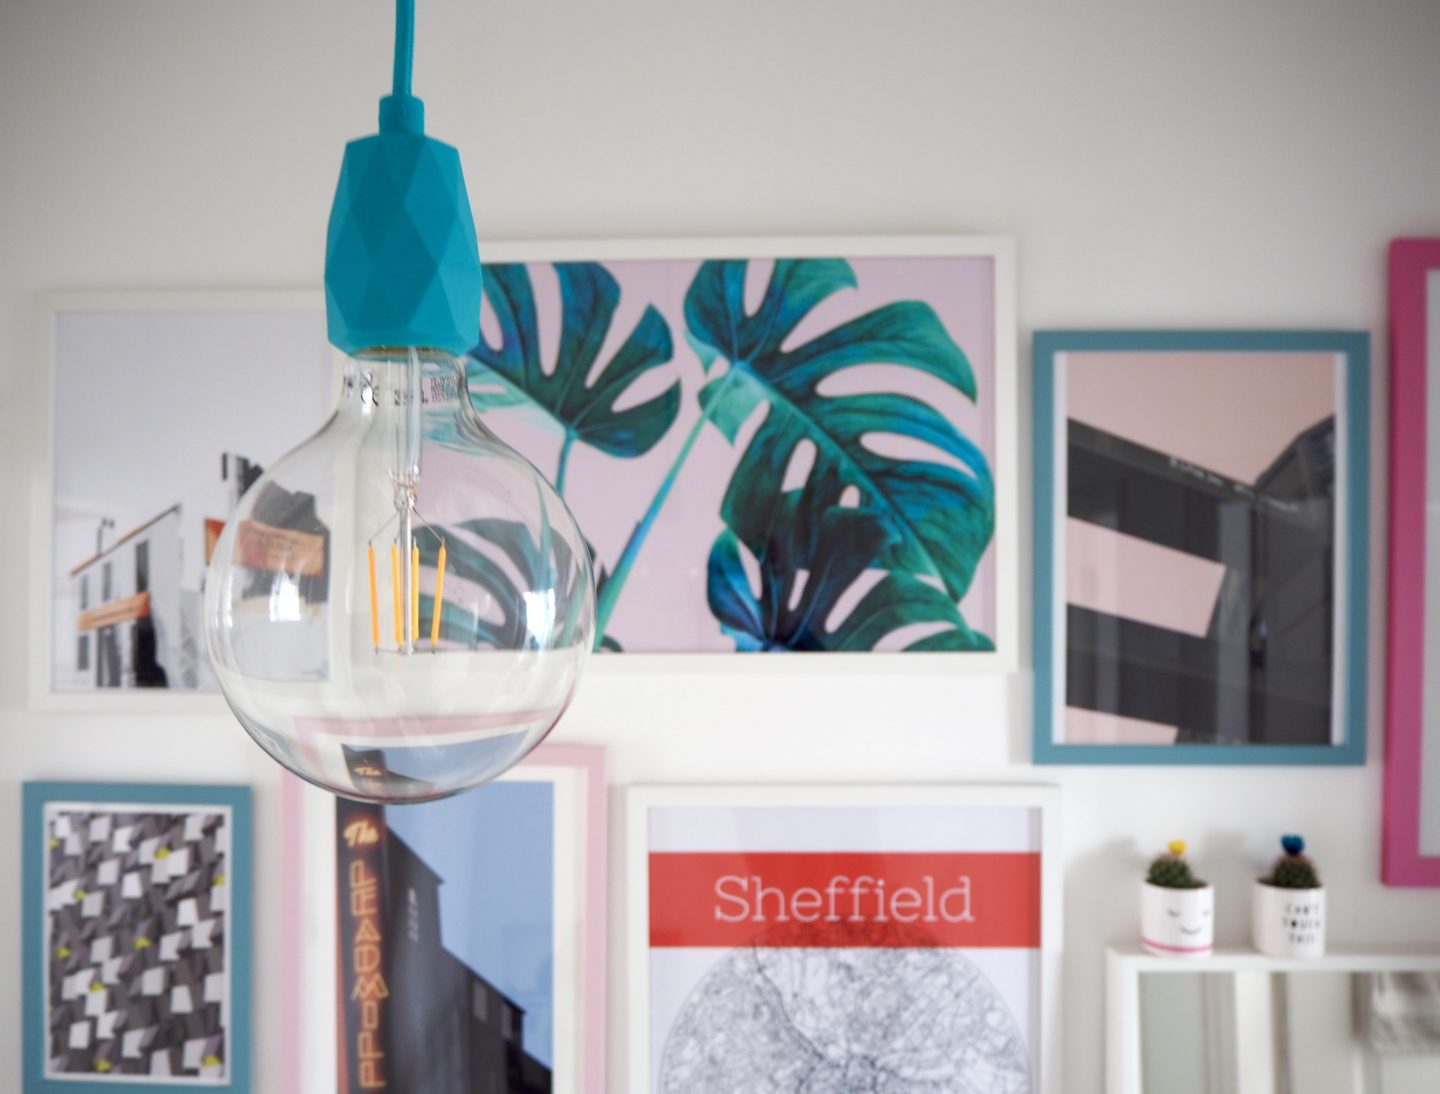 Sheffield themed gallery wall